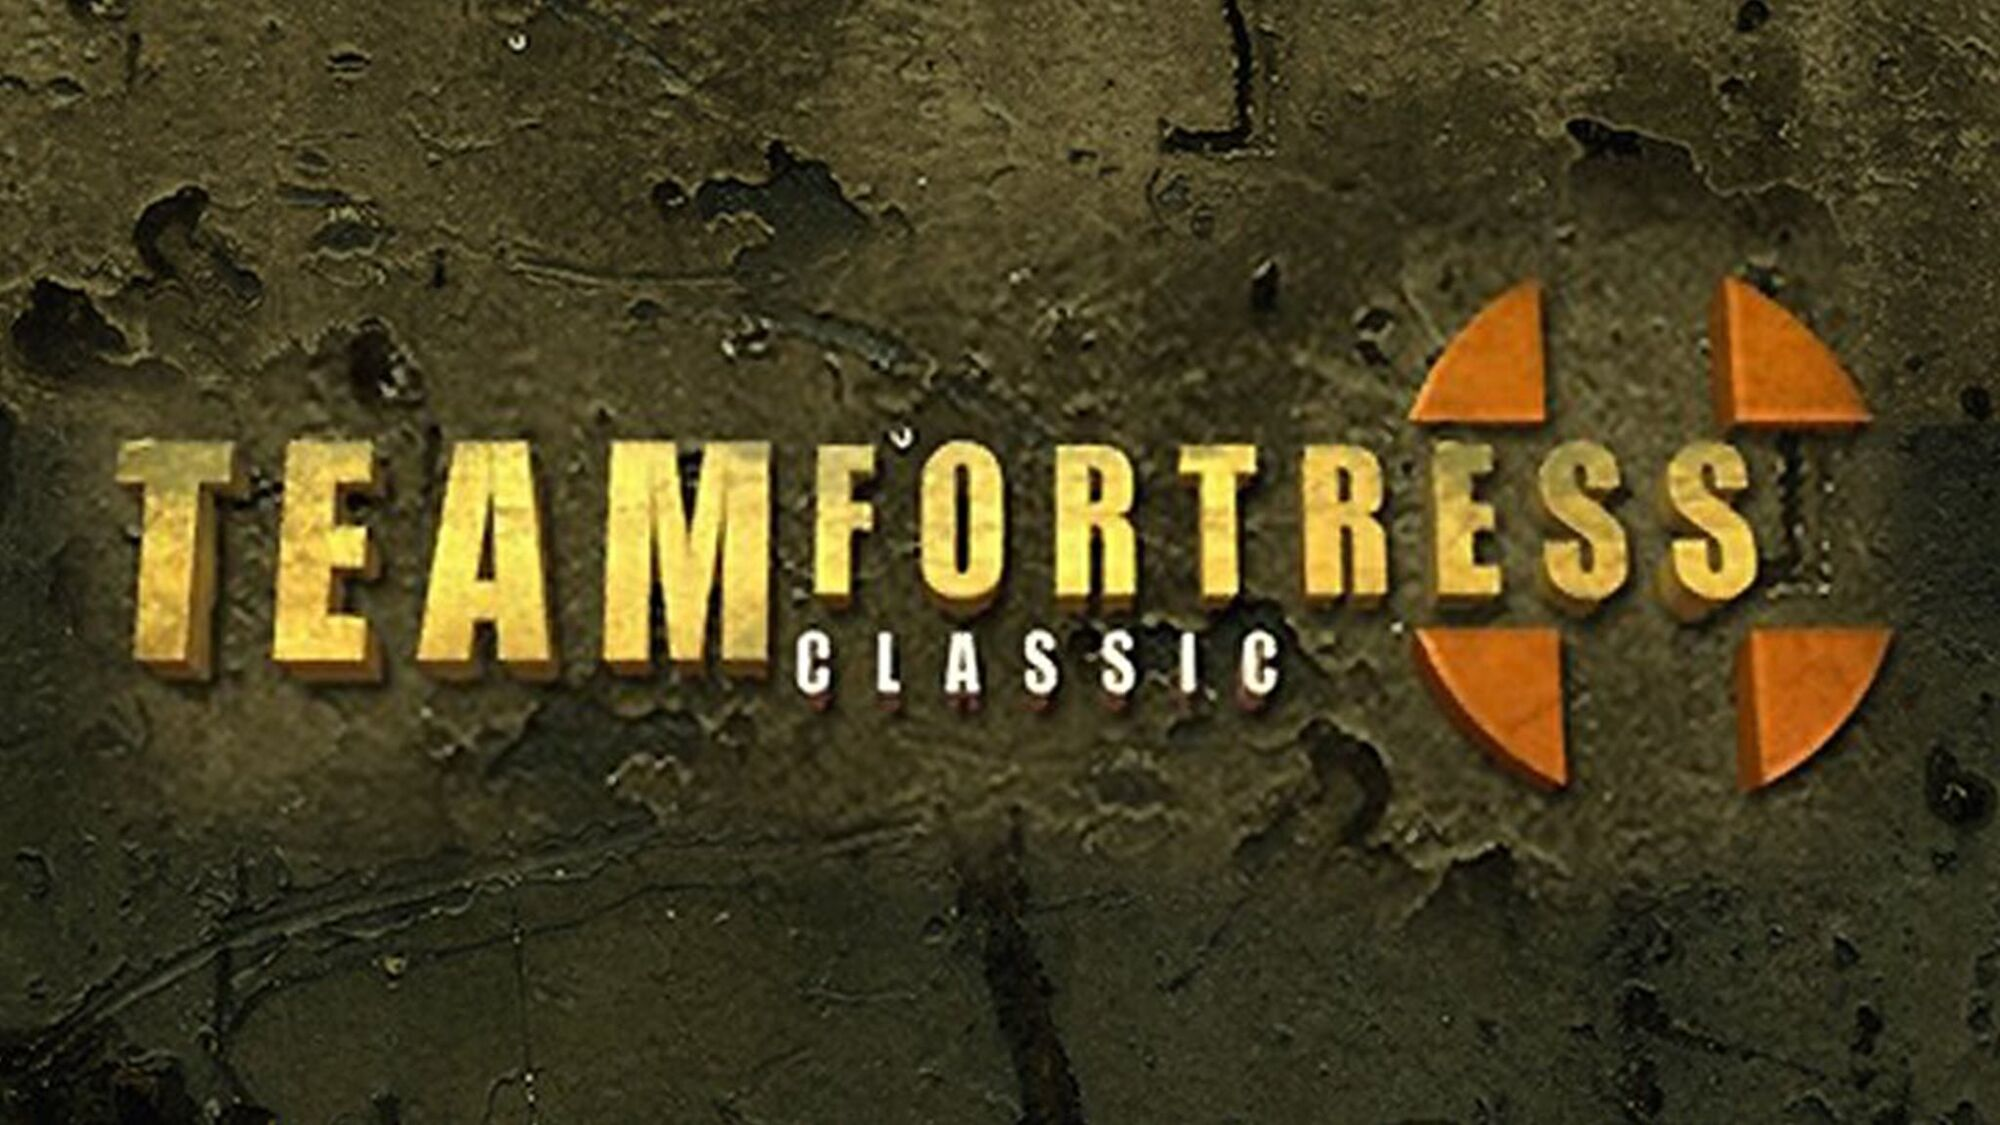 Team Fortress Classic | Team Fortress Wiki | FANDOM powered